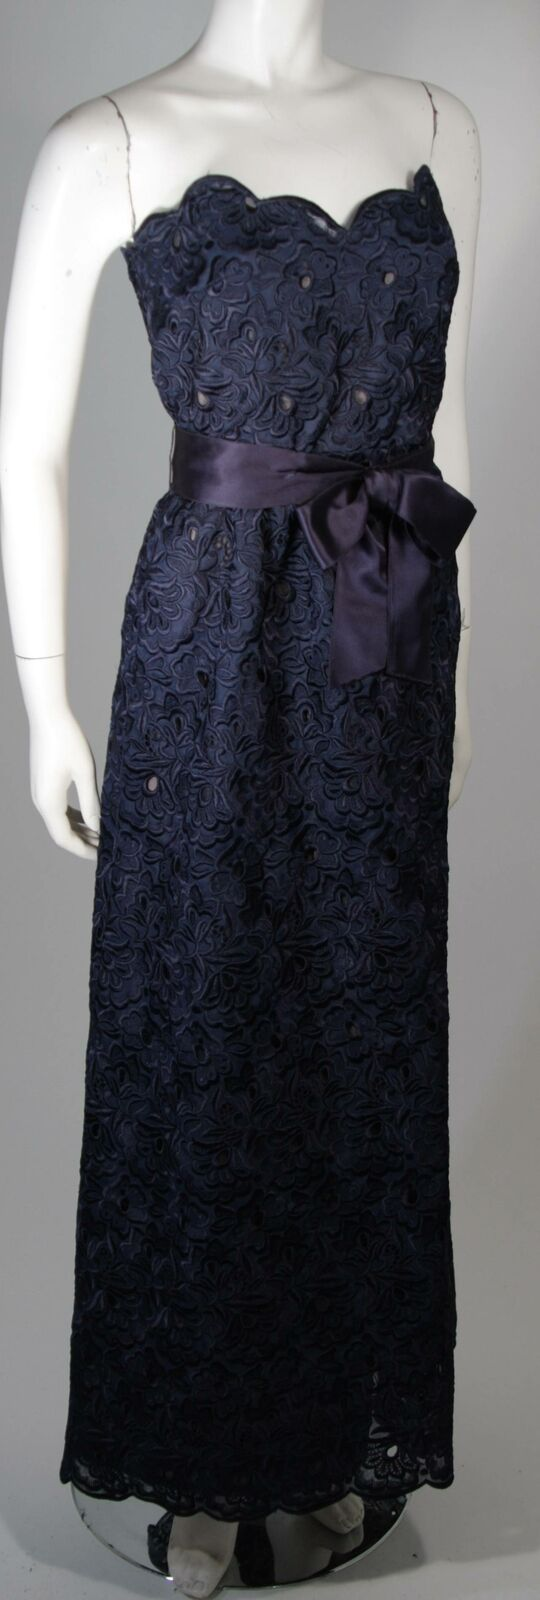 ARNOLD SCAASI Navy Floral Lace Gown Satin Belt Si… - image 7